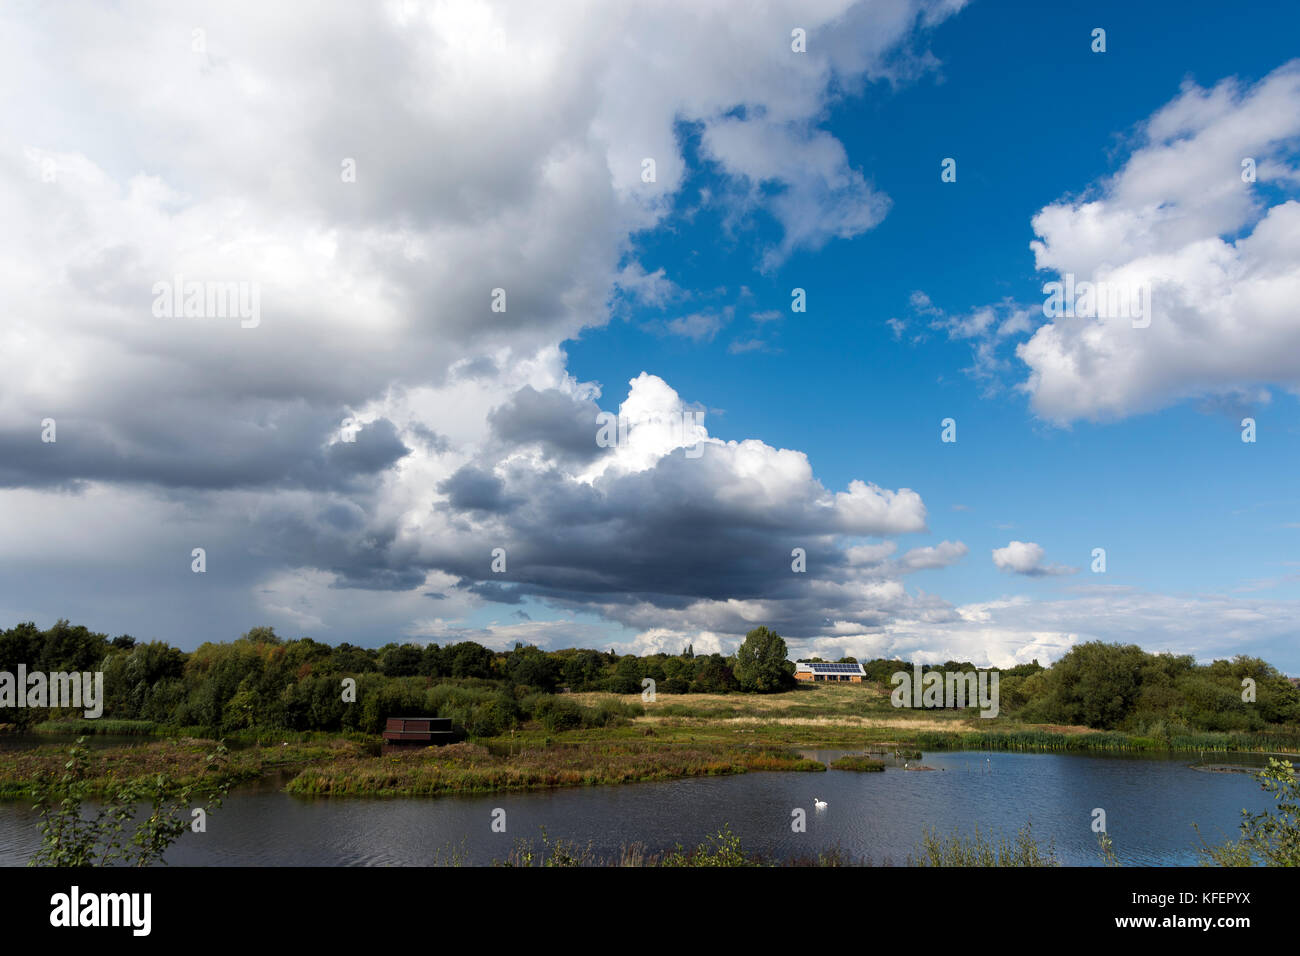 Sandwell Vally, West bromwich UK - Stock Image